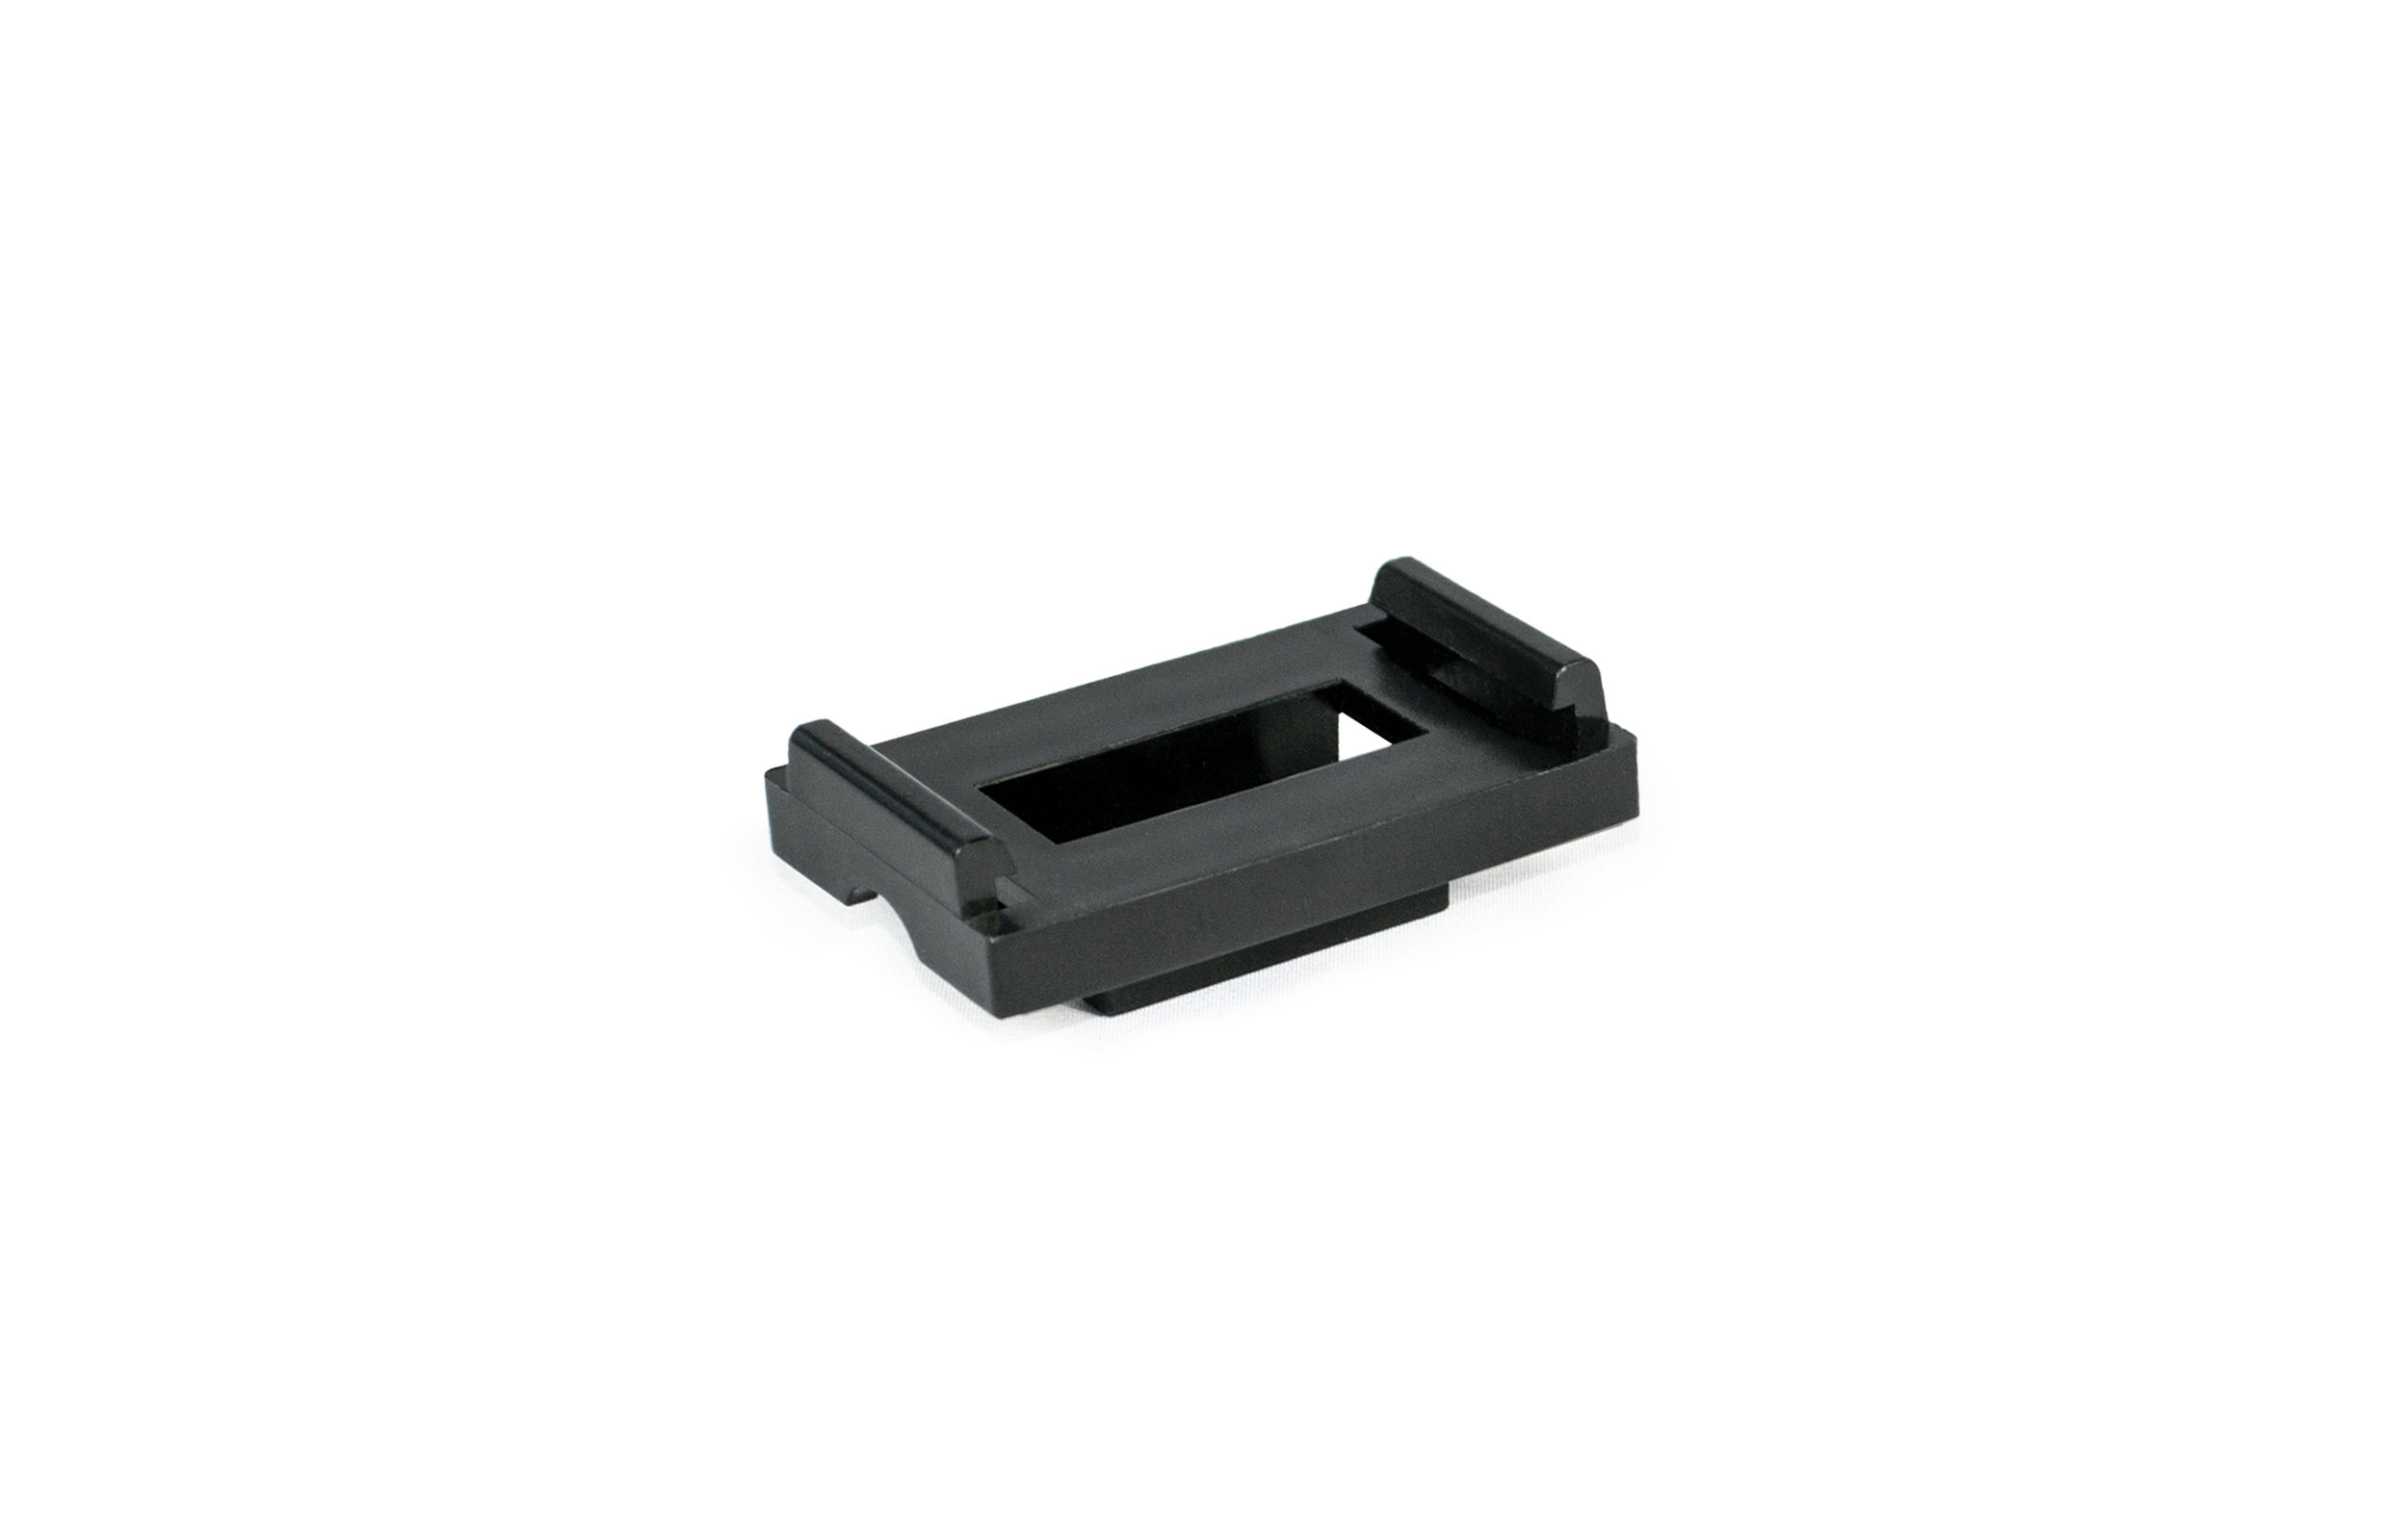 Glide Clip - Connects channel to starter stripAllows for faster installationNylon composition